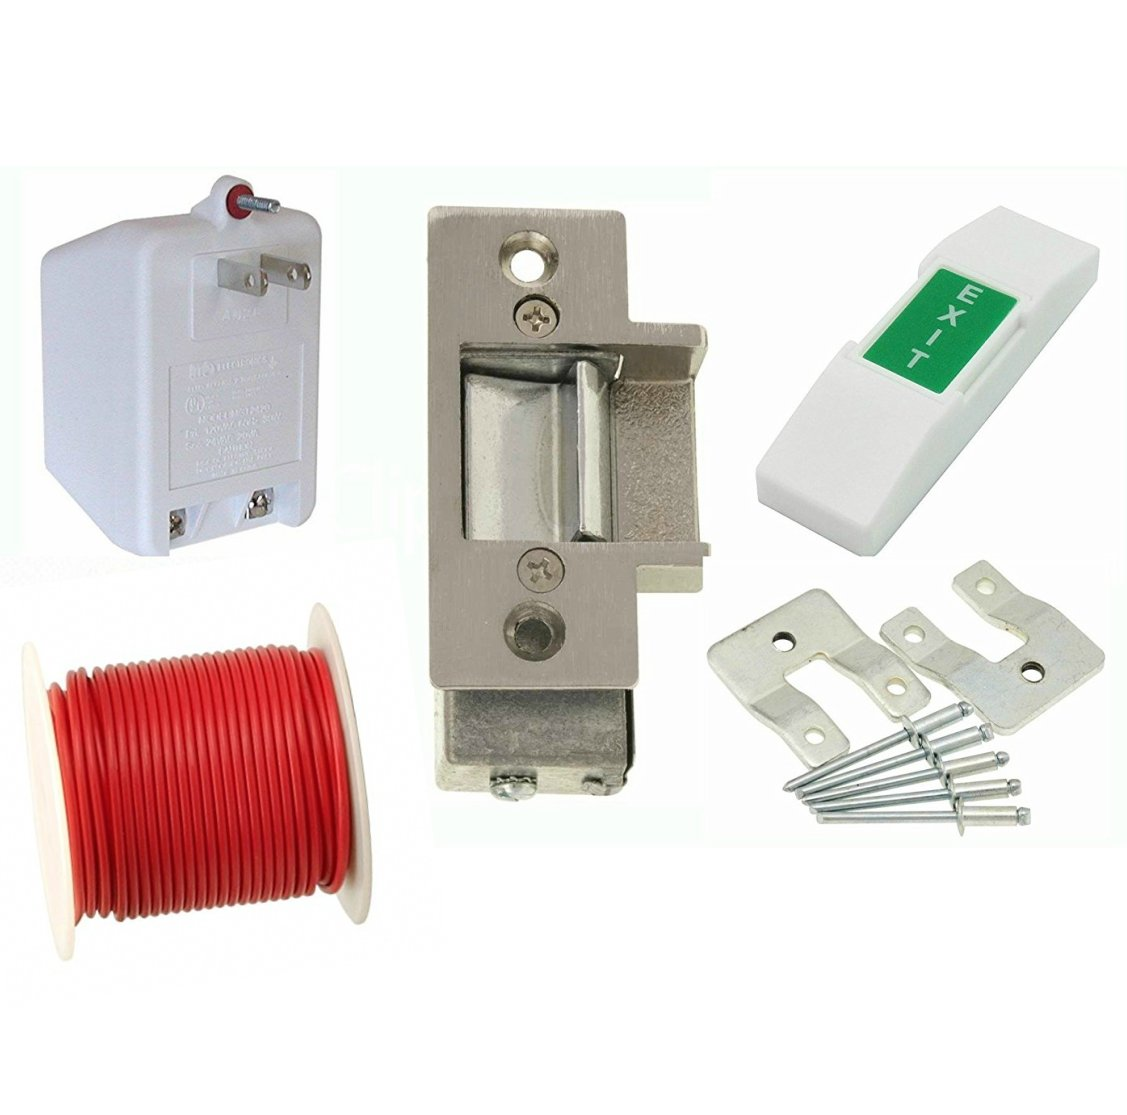 amazoncom electric strike door lock kit 14 c for metal frame